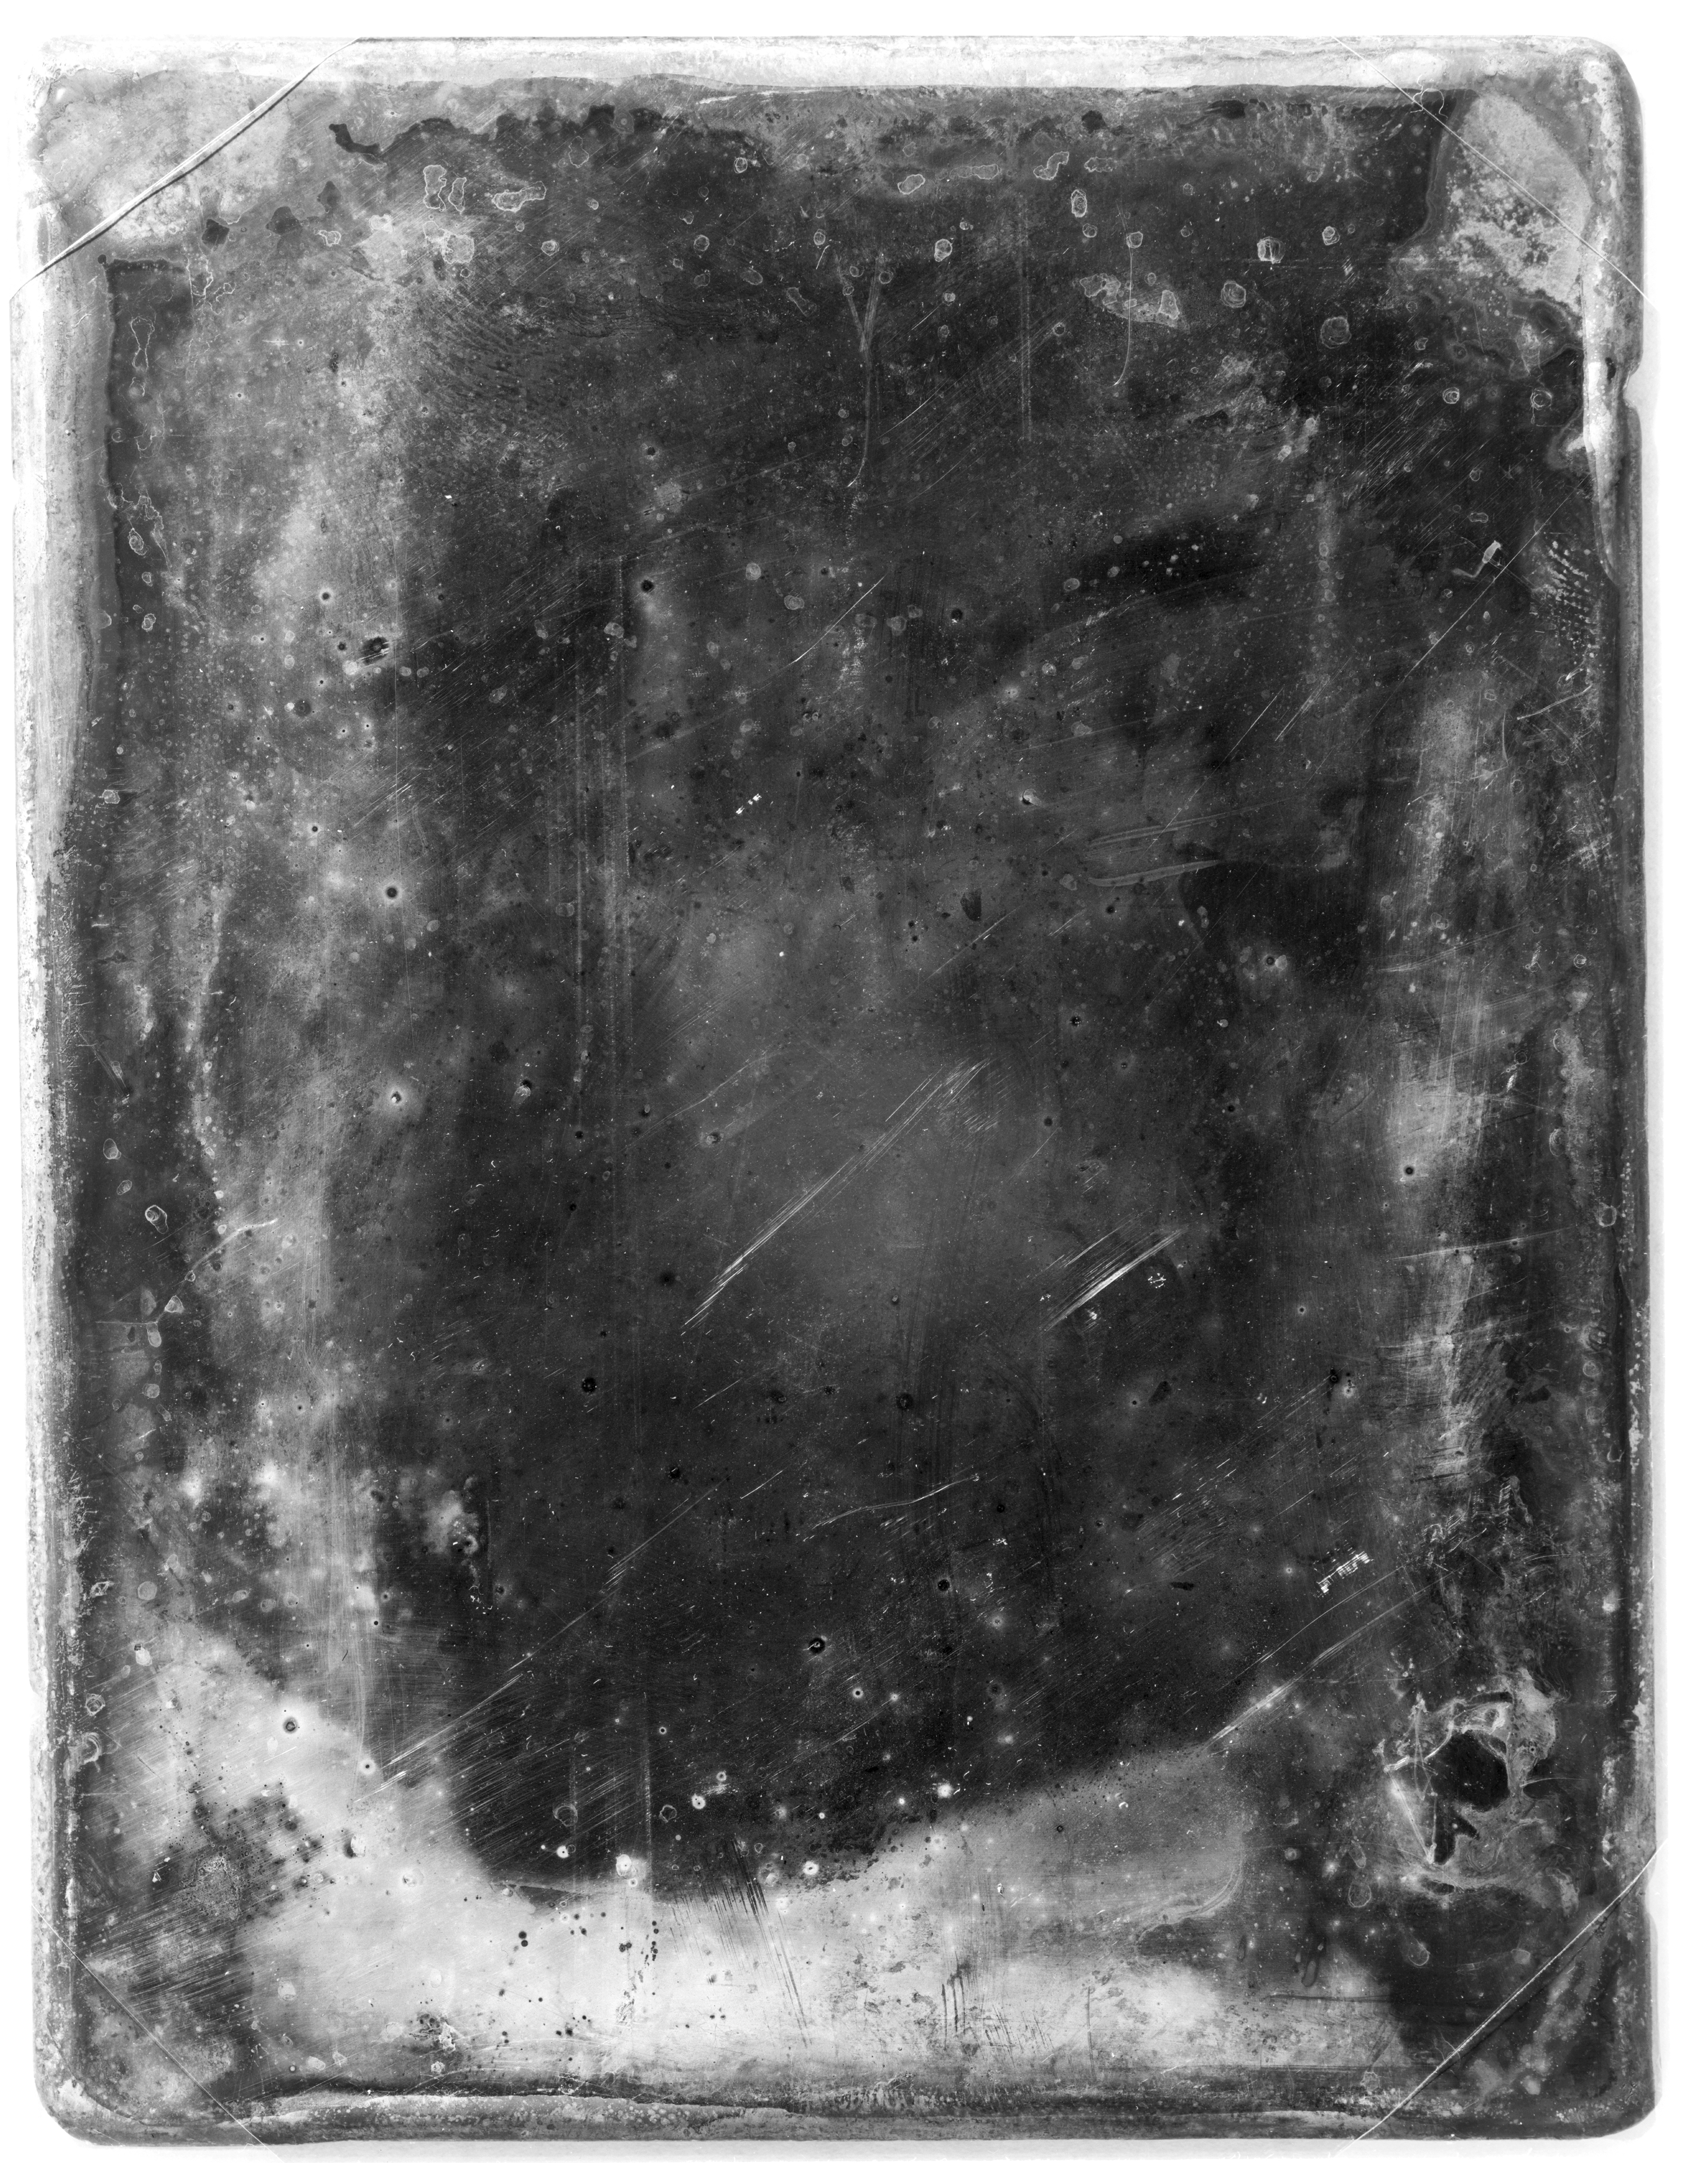 free black and white old grungy film texture texture